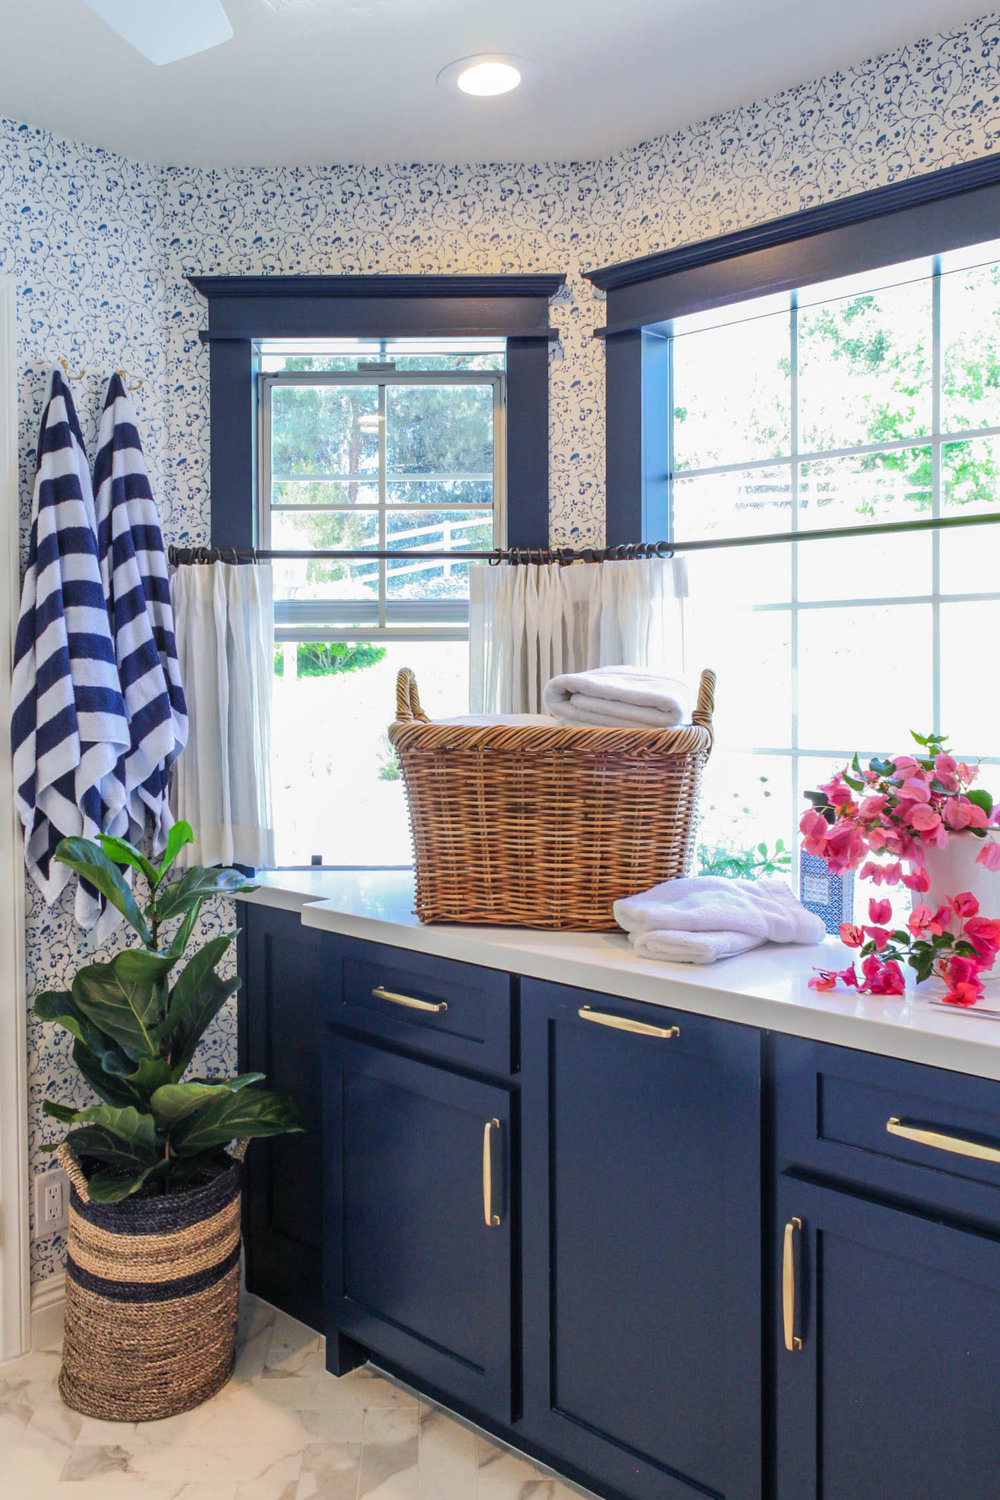 A Freshly Picked Laundry Room